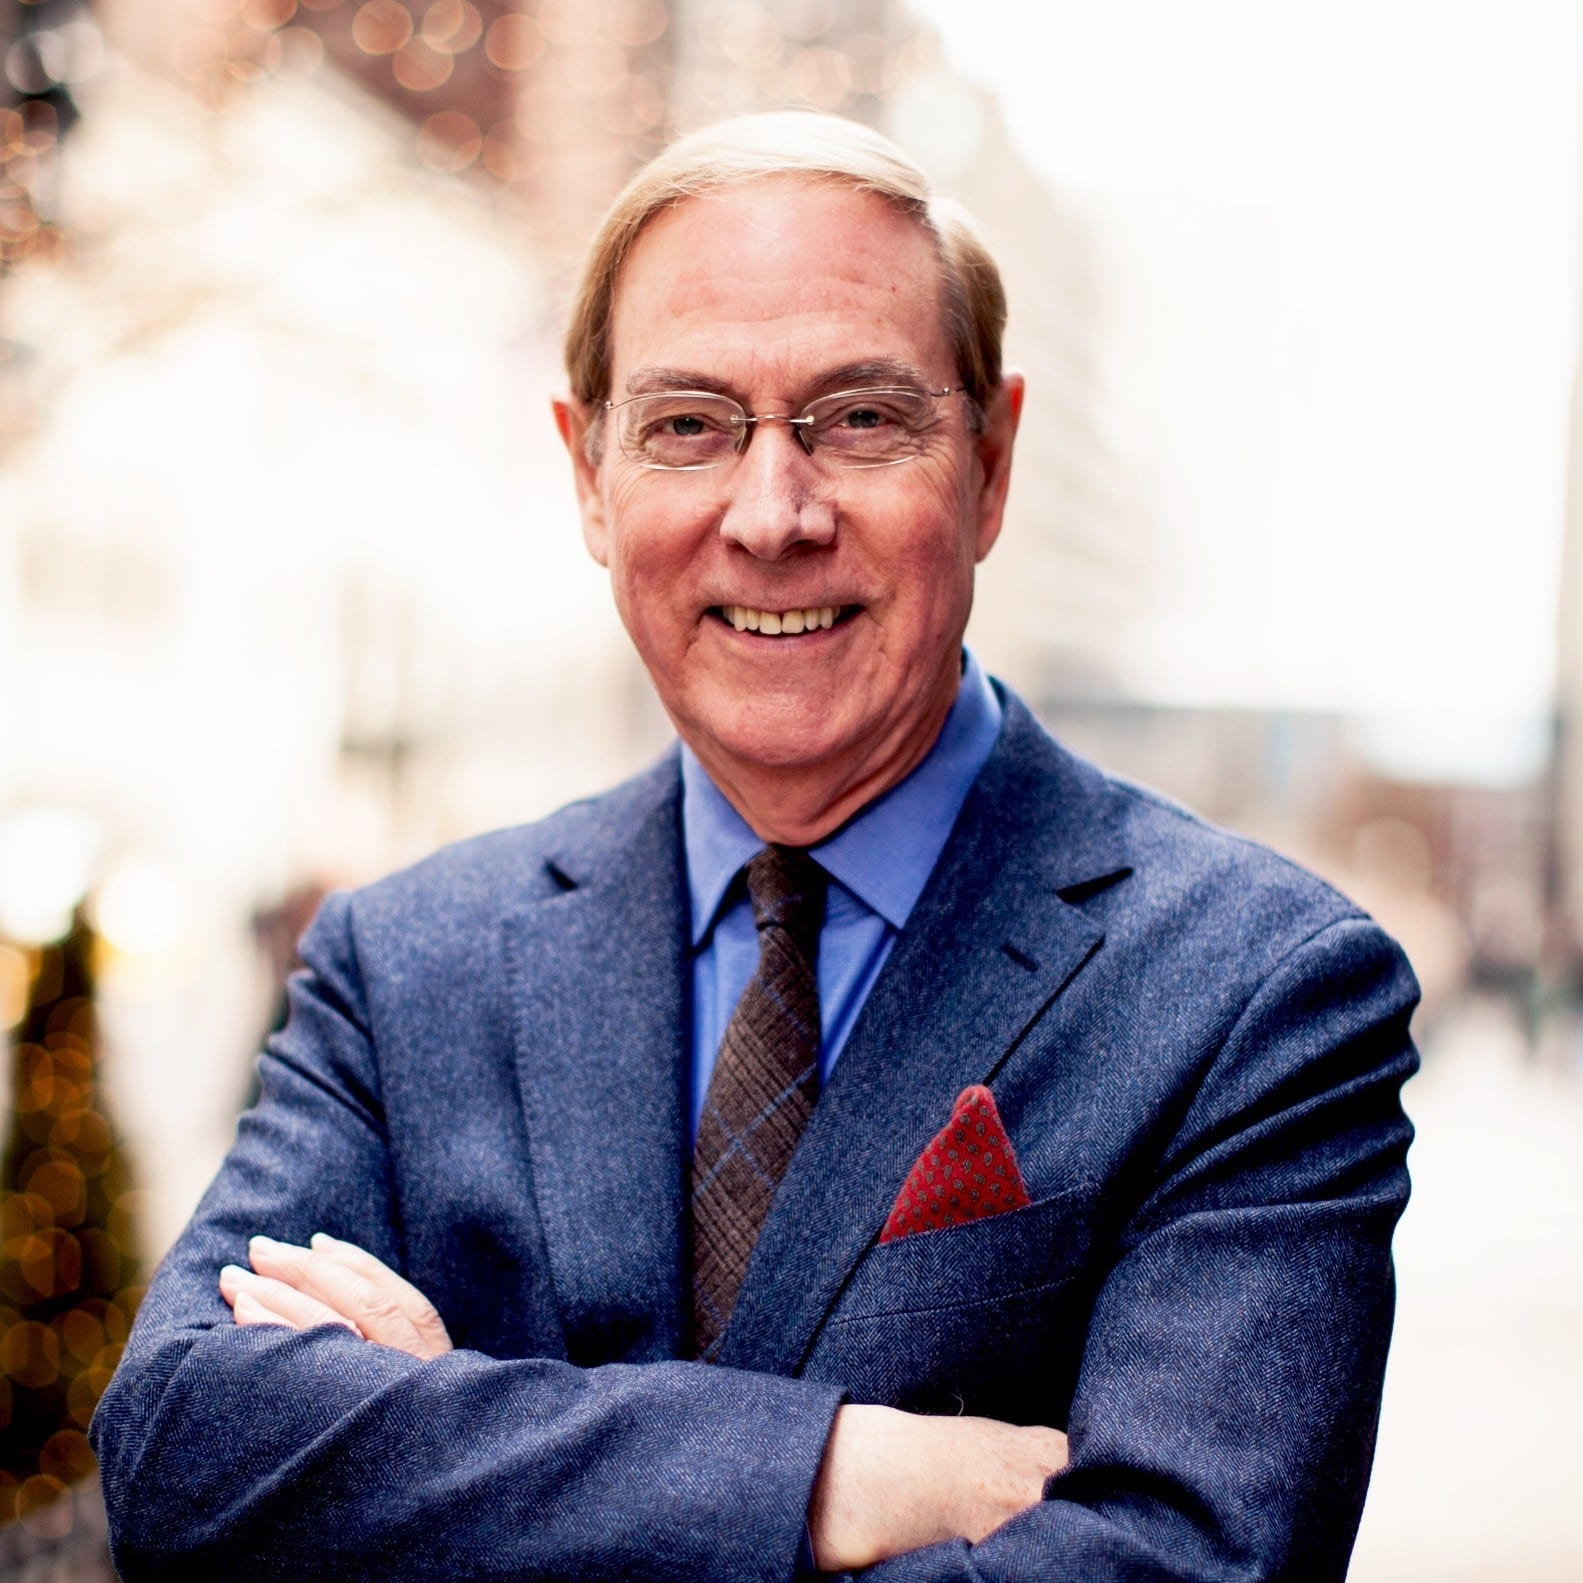 GARY CHAPMAN: BUILDING RELATIONSHIPS